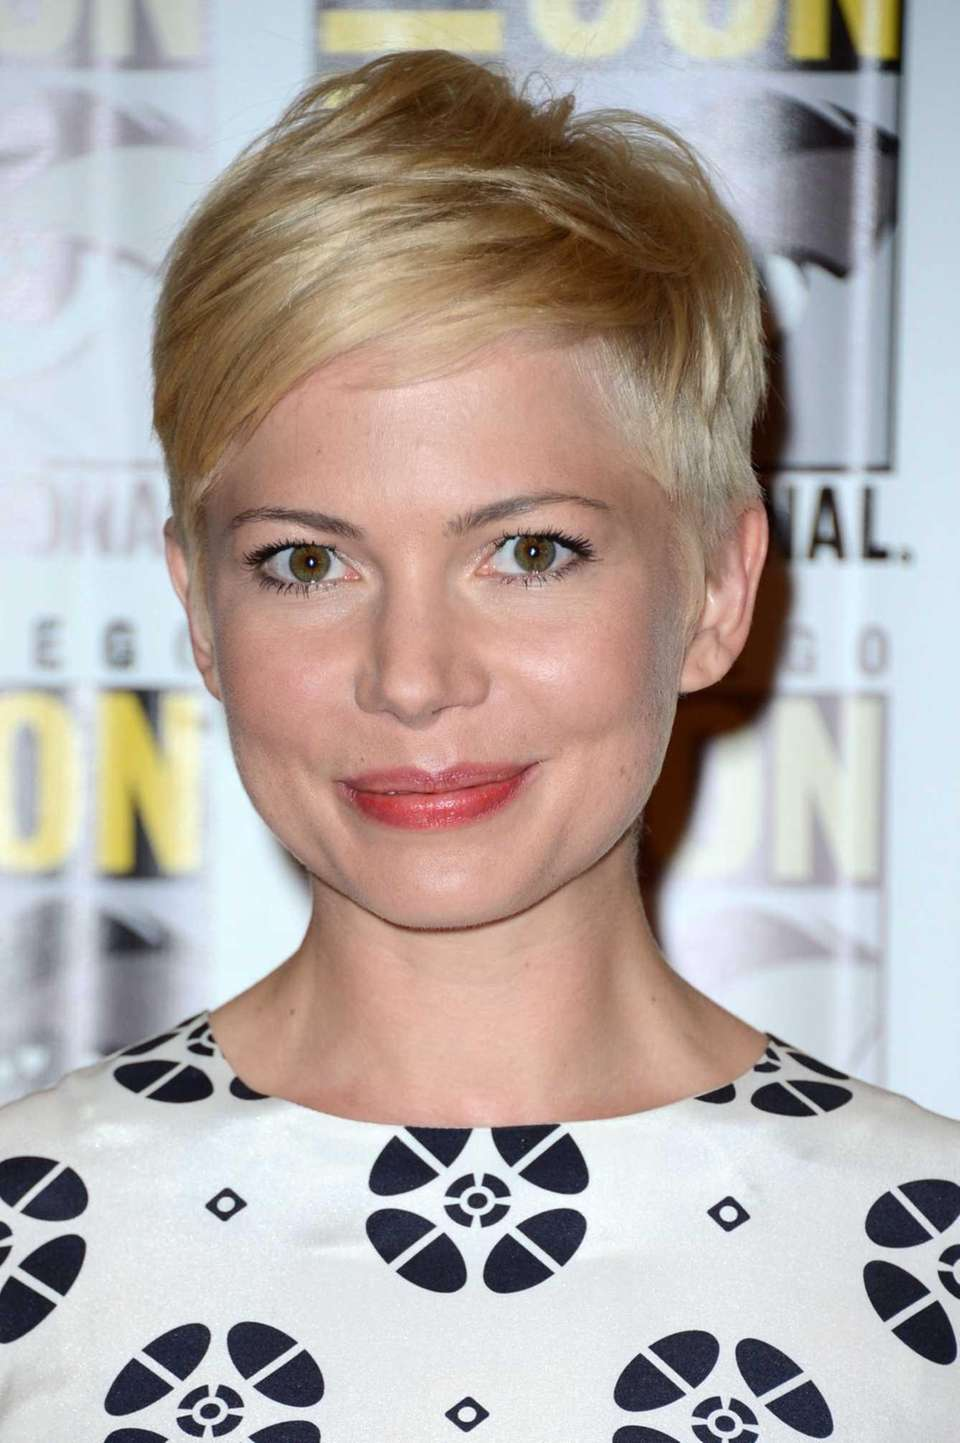 Michelle Williams was born on Sept. 9, 1980.